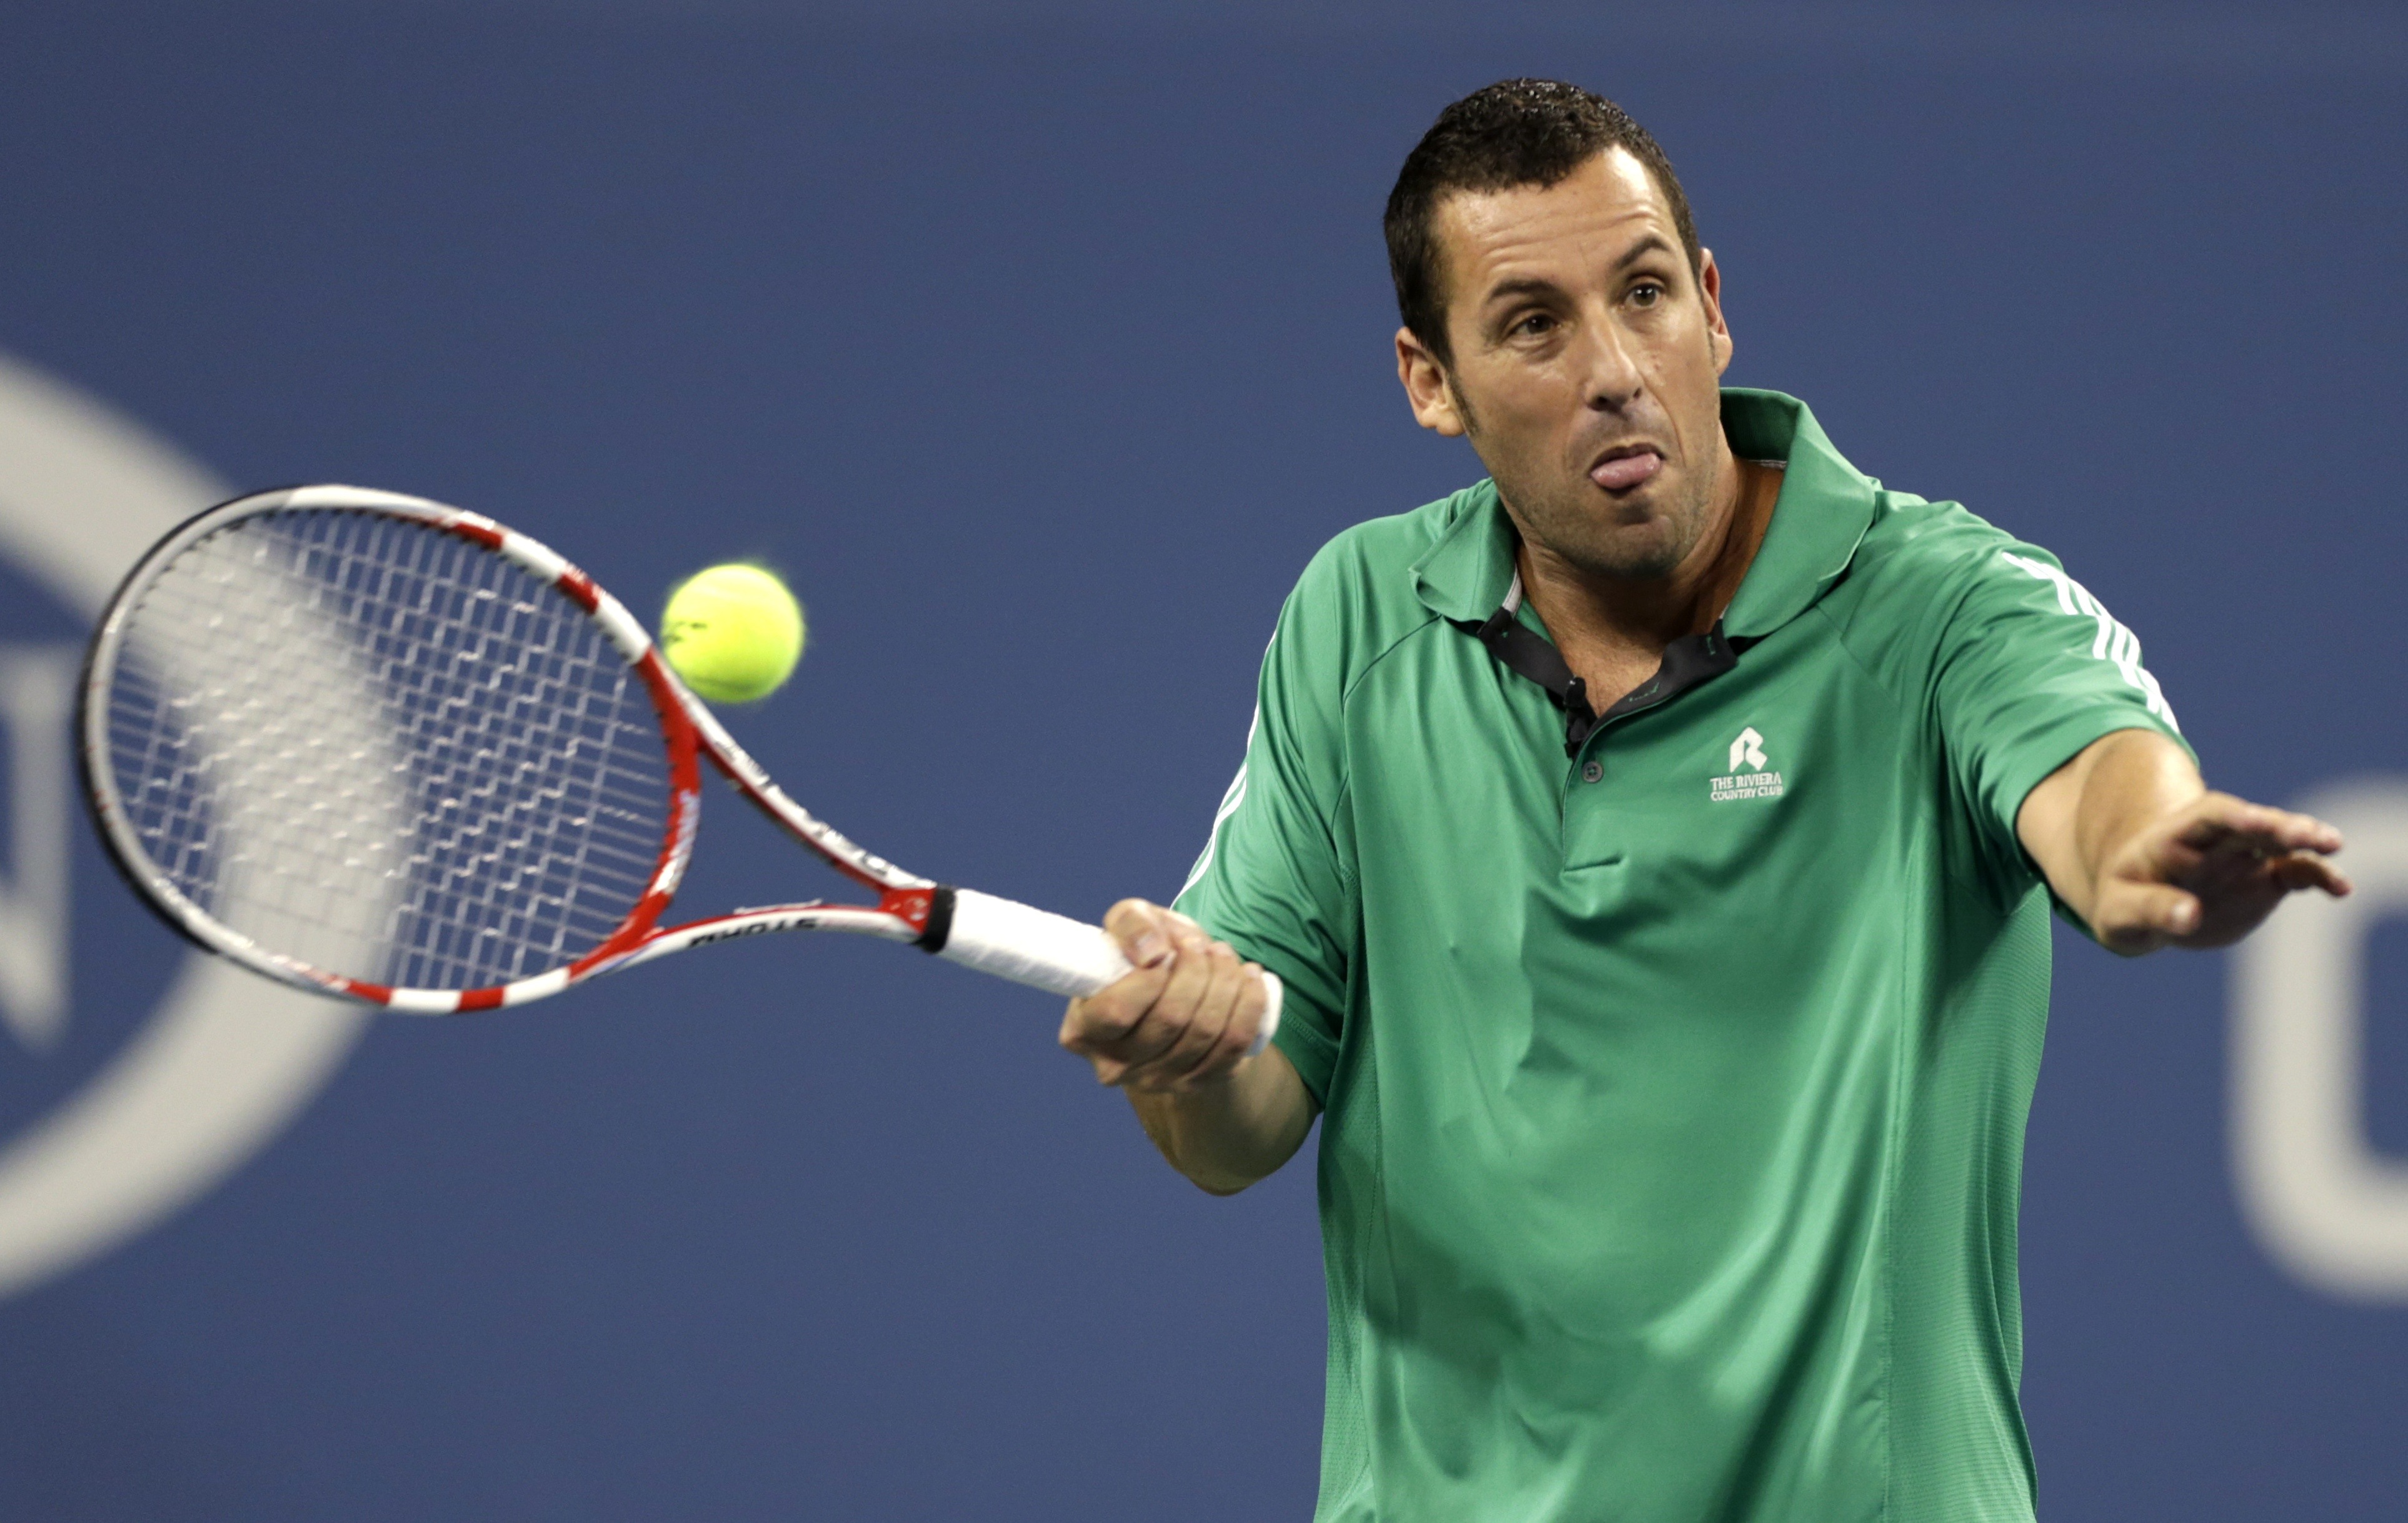 Believing he could turn his hand at any sport with great success Gilmore briefly joined the ATP Tour